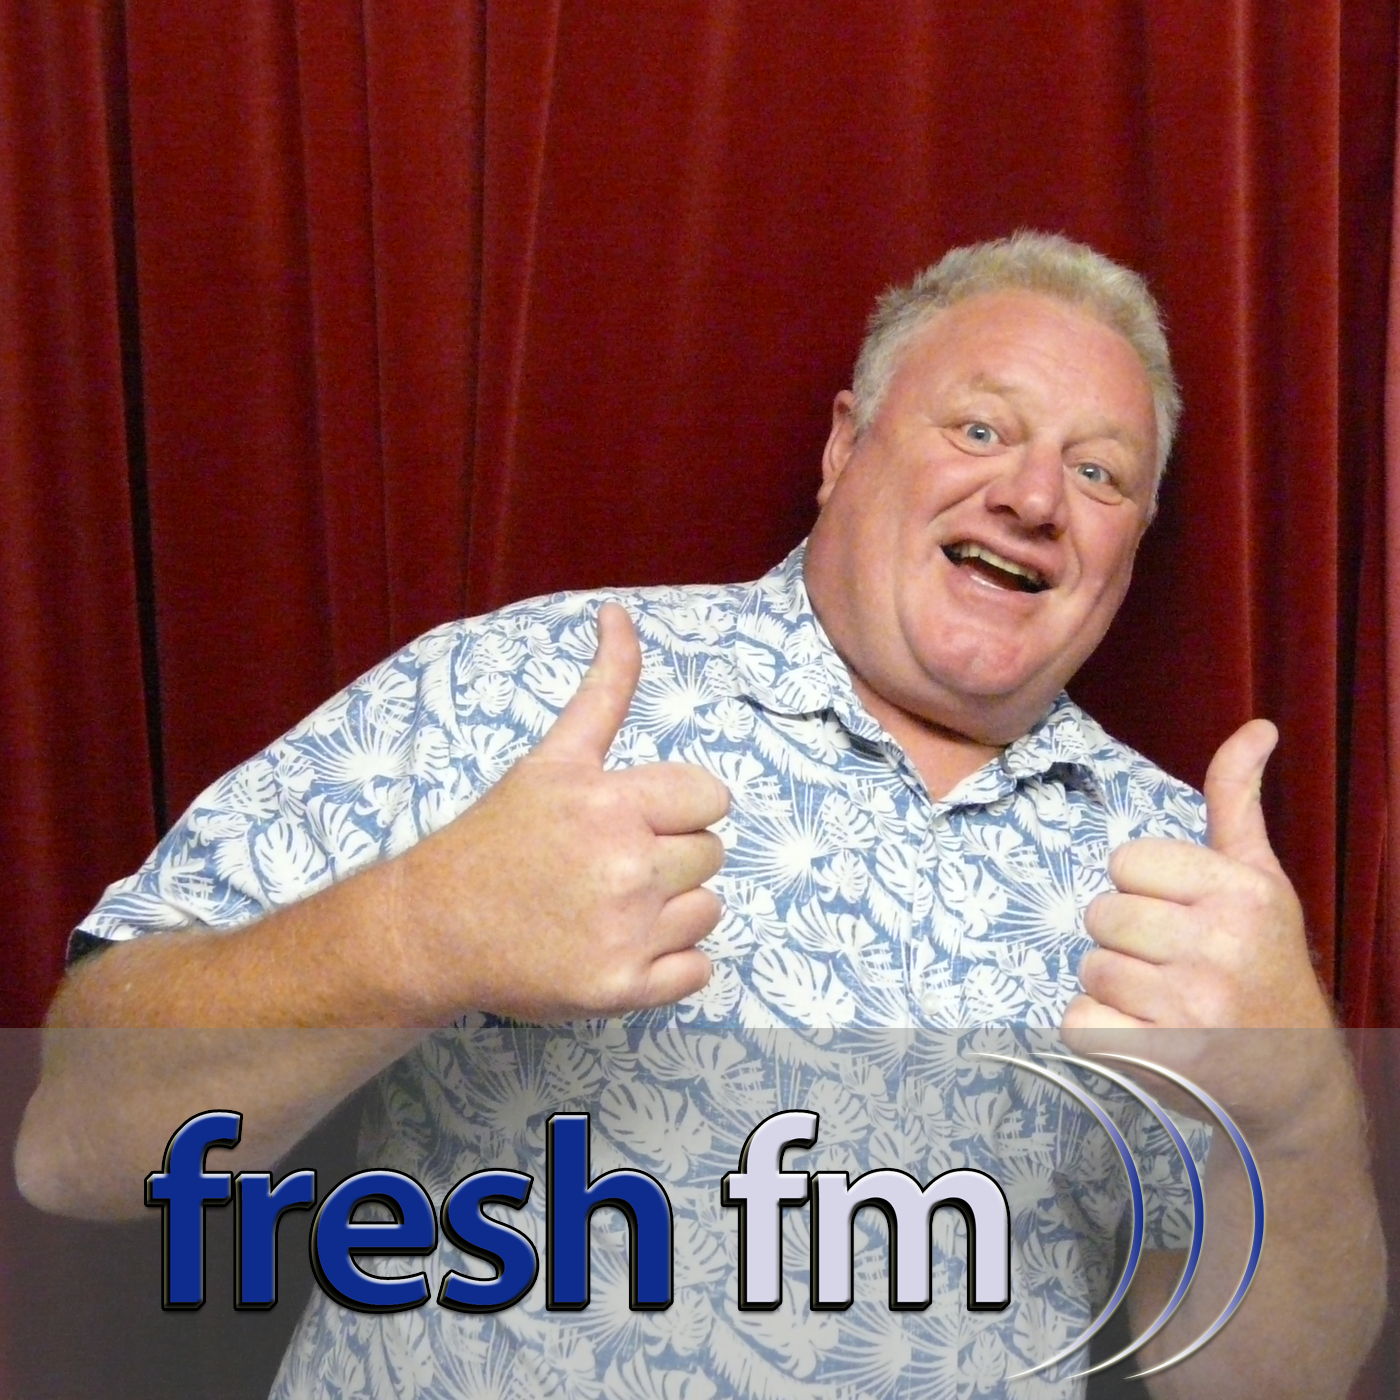 https://cdn.accessradio.org/StationFolder/freshfm/Images/Fresh-Start - Bob-Saunders.png